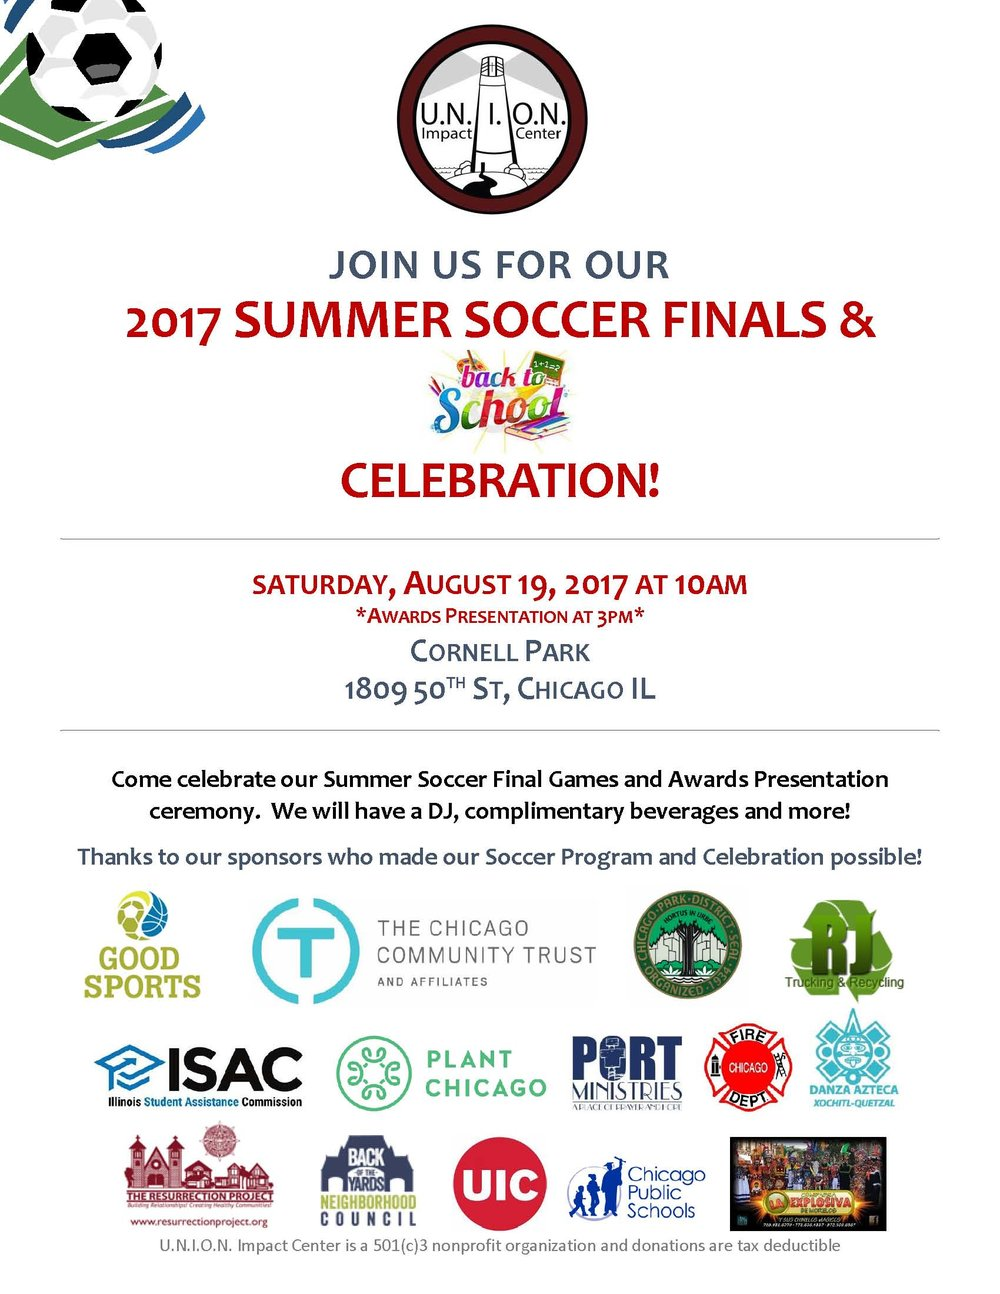 2017 Summer Soccer Finals - Final rev3.jpg